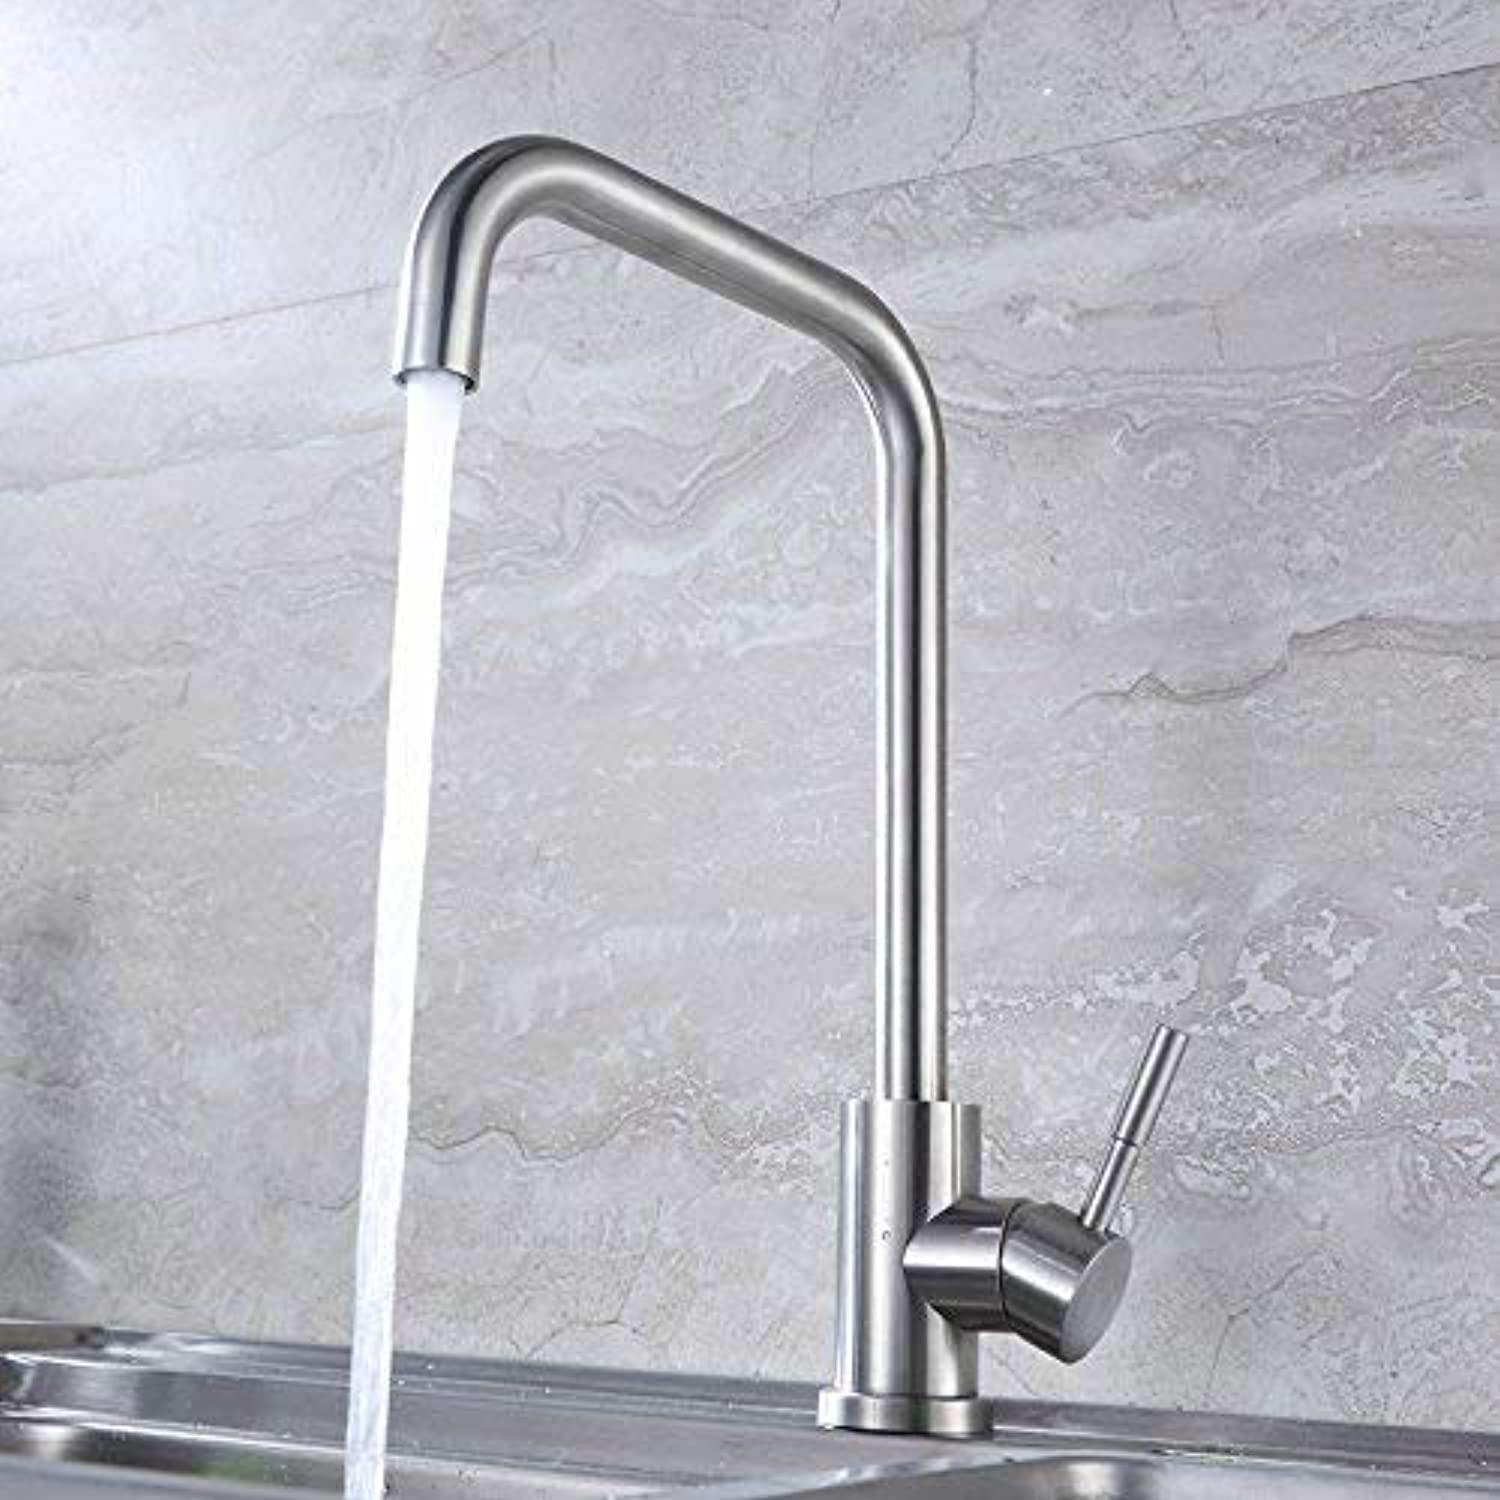 Oudan Hot and Cold Water Faucet Kitchen Faucet Hot and Cold Vegetables Basin Sink Faucet Brushed Stainless Steel Faucet Can Be redated C Models Without Hose (color   C Models Without Hose, Size   -)